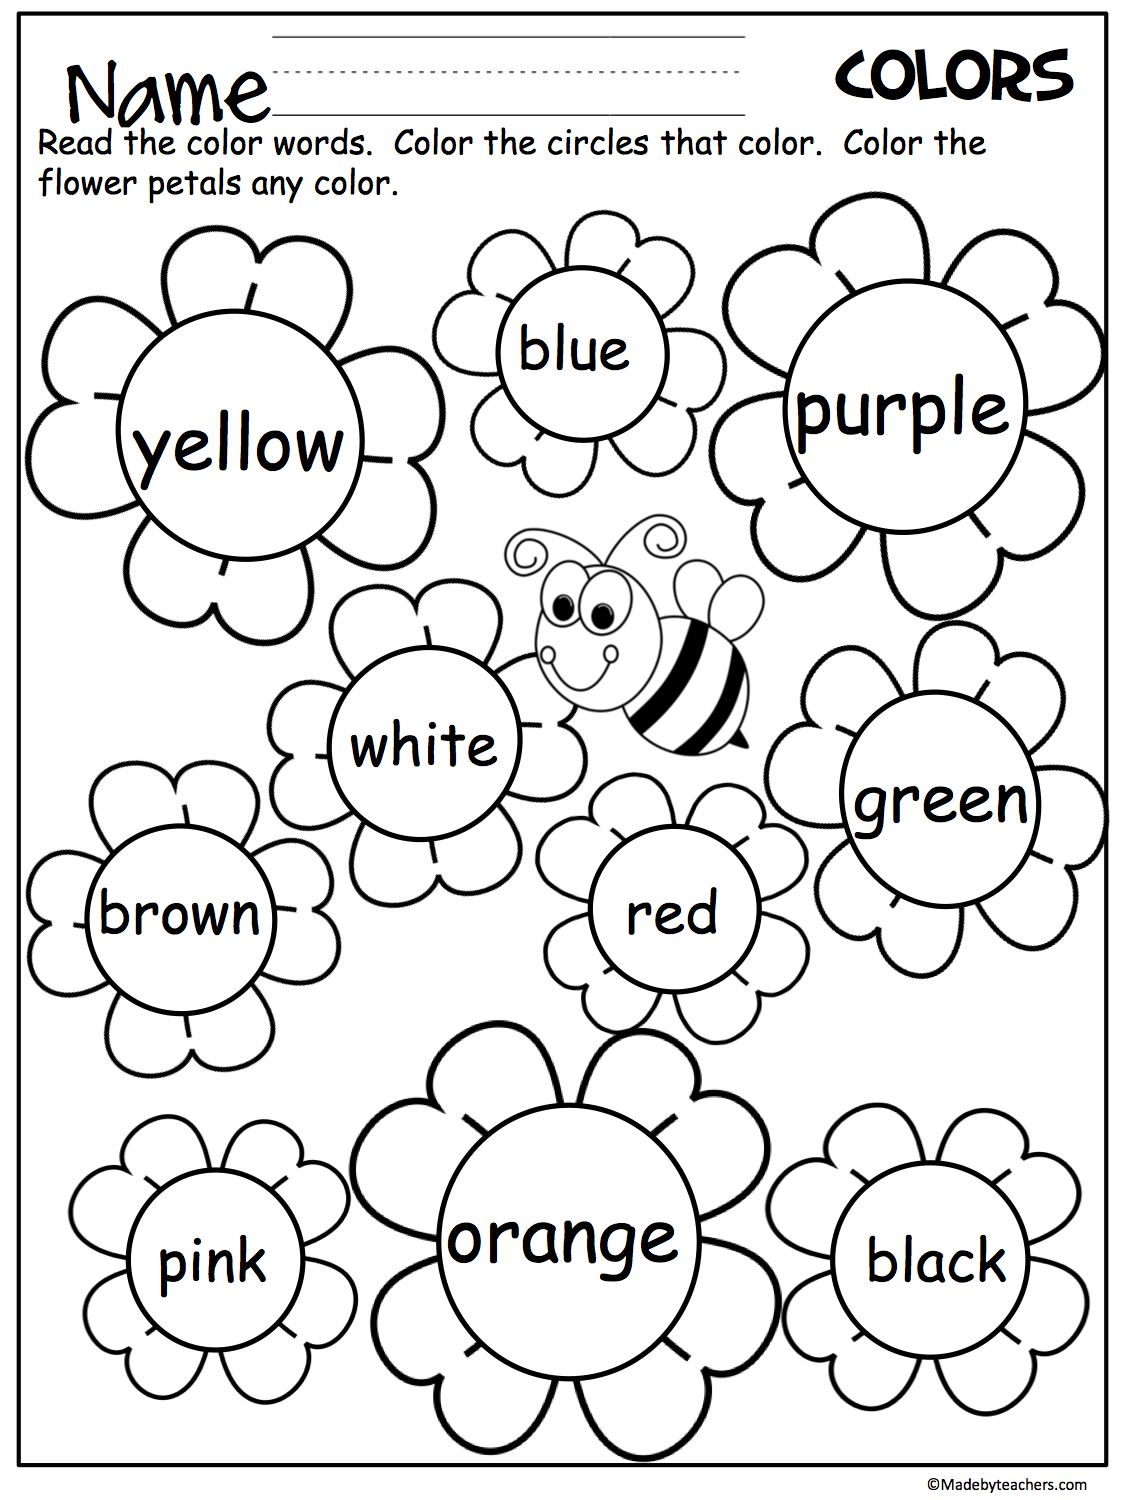 free flower color words worksheet great for the spring my future classroom pinterest. Black Bedroom Furniture Sets. Home Design Ideas